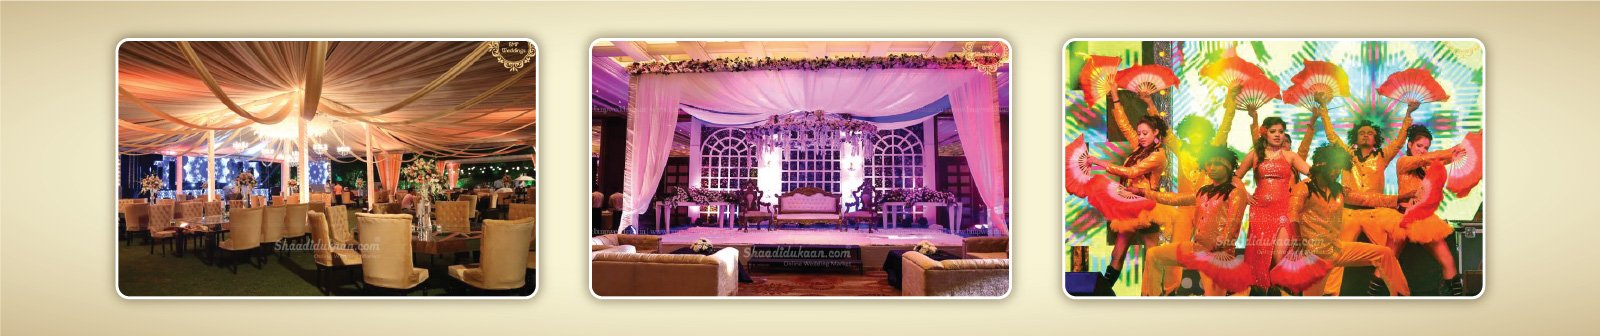 Best Wedding Planners in Ludhiana